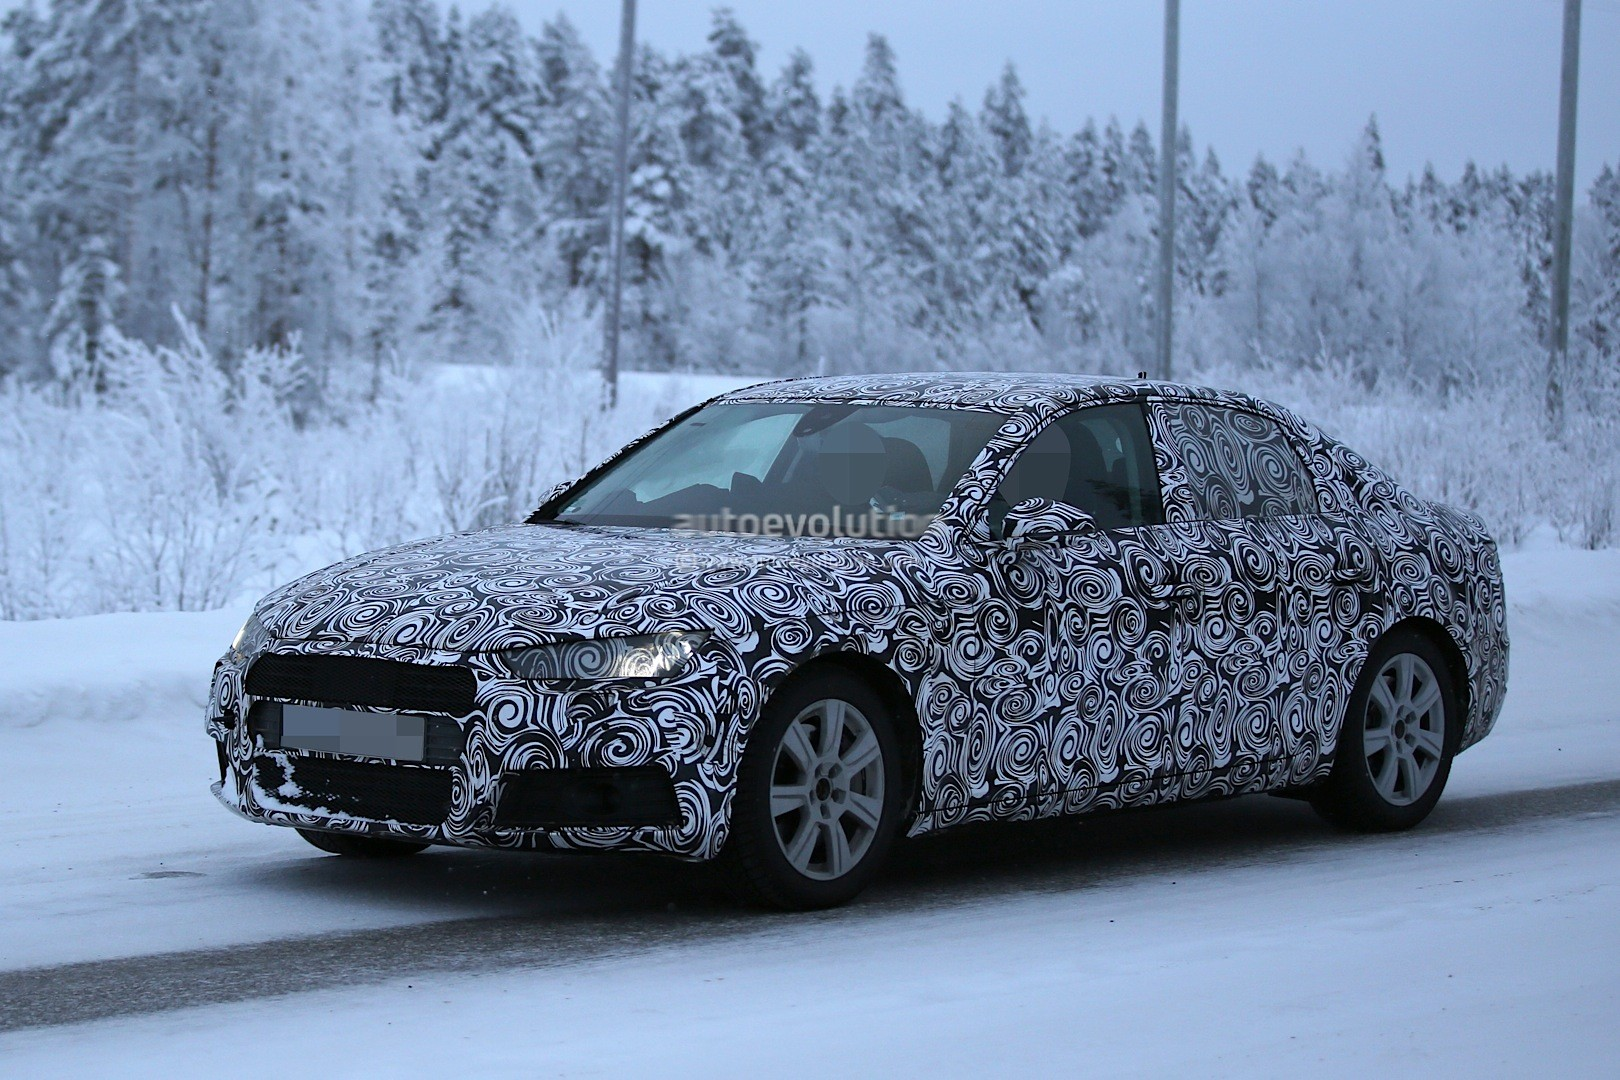 2016 Audi A4 Spied with Production Body During Winter Testing Session - autoevolution